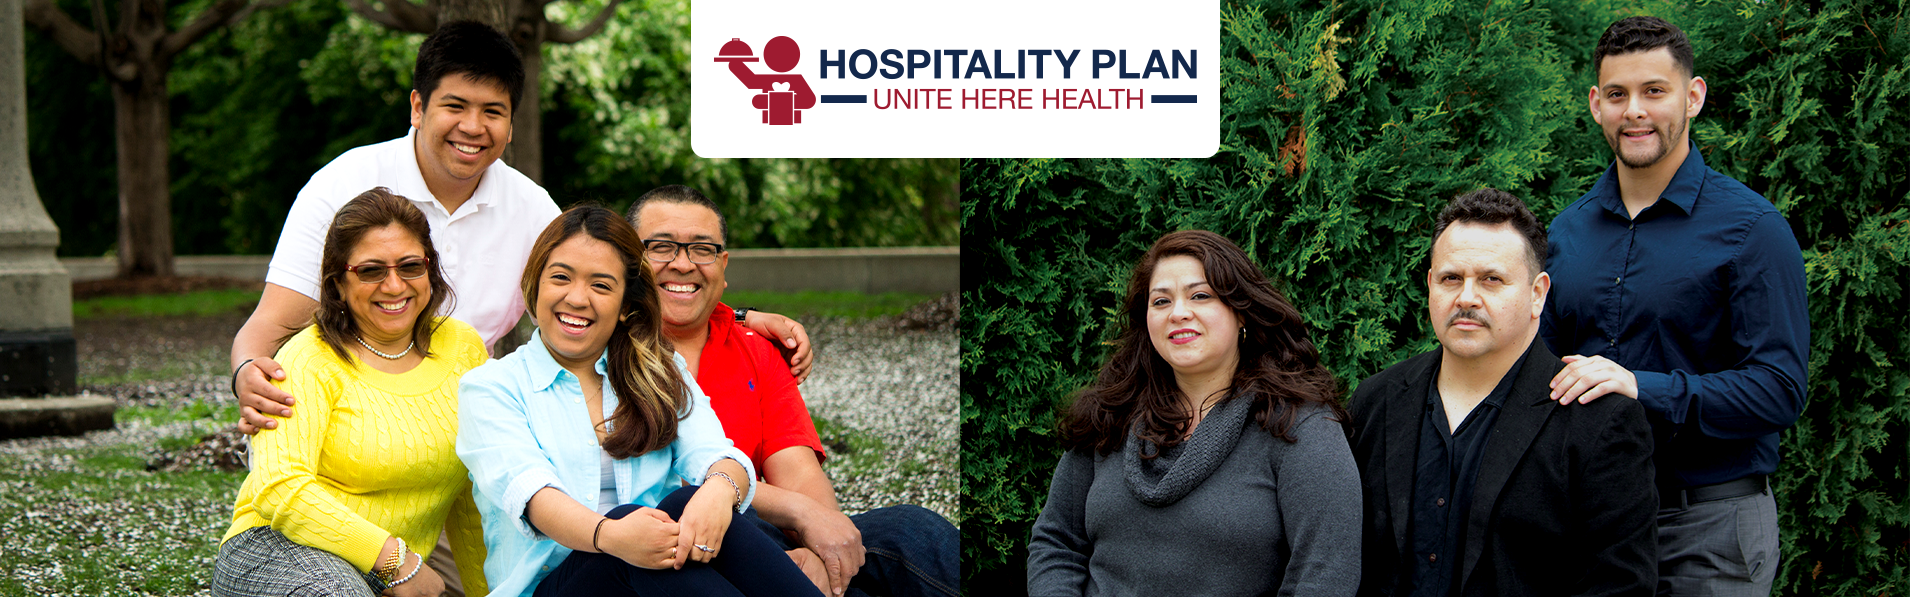 185-Banner-HospitalityPlan.png